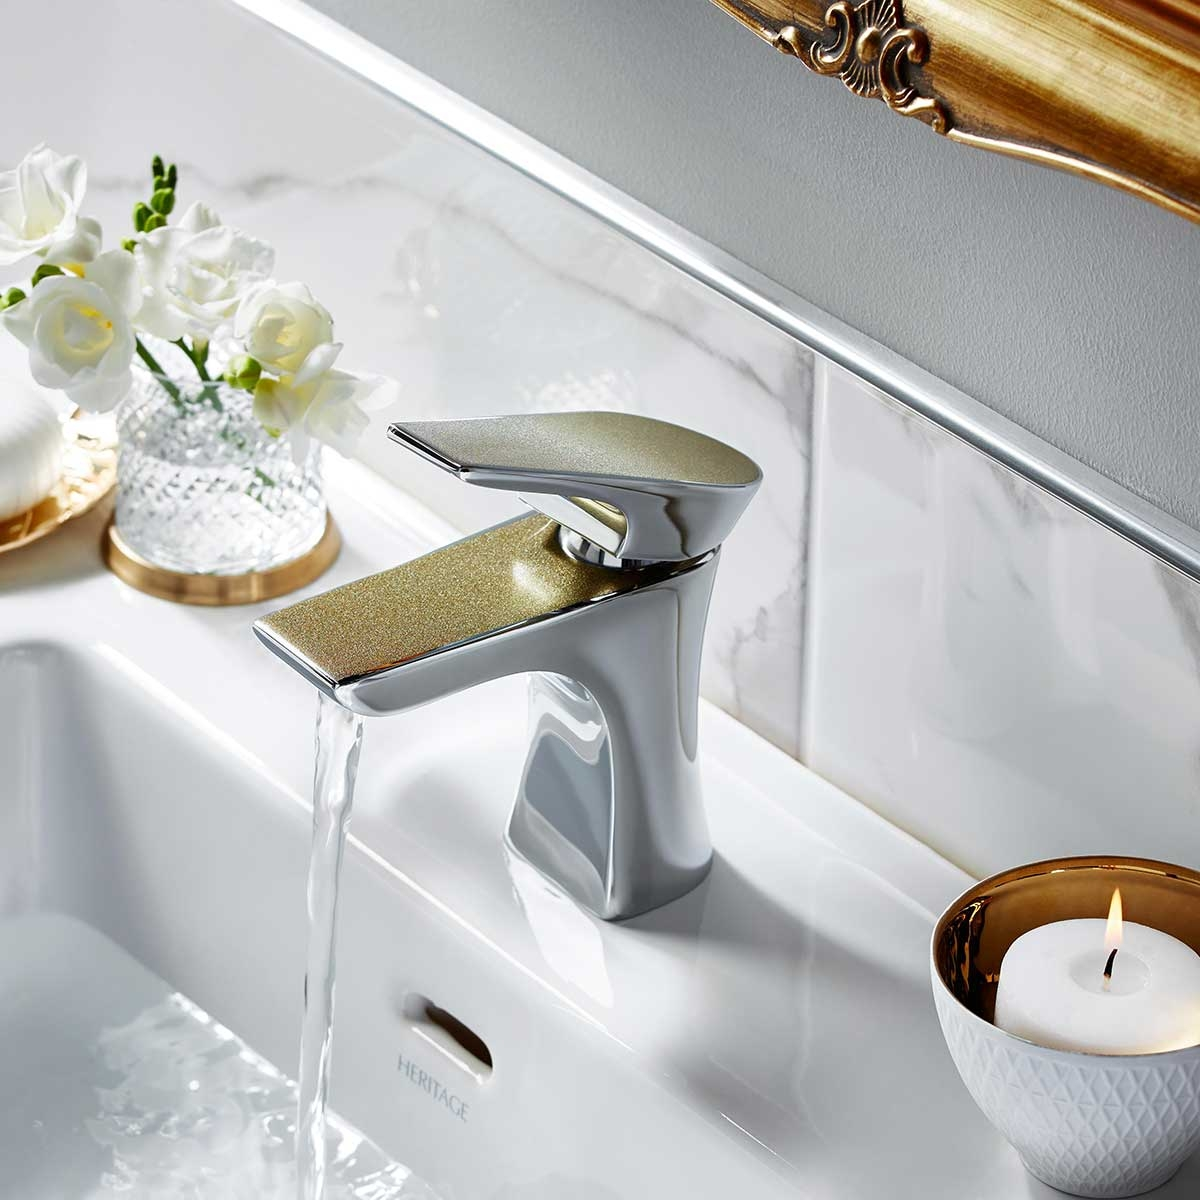 Bristan Metallix Hourglass Mixer Tap with Clicker Waste- Champagne Shimmer